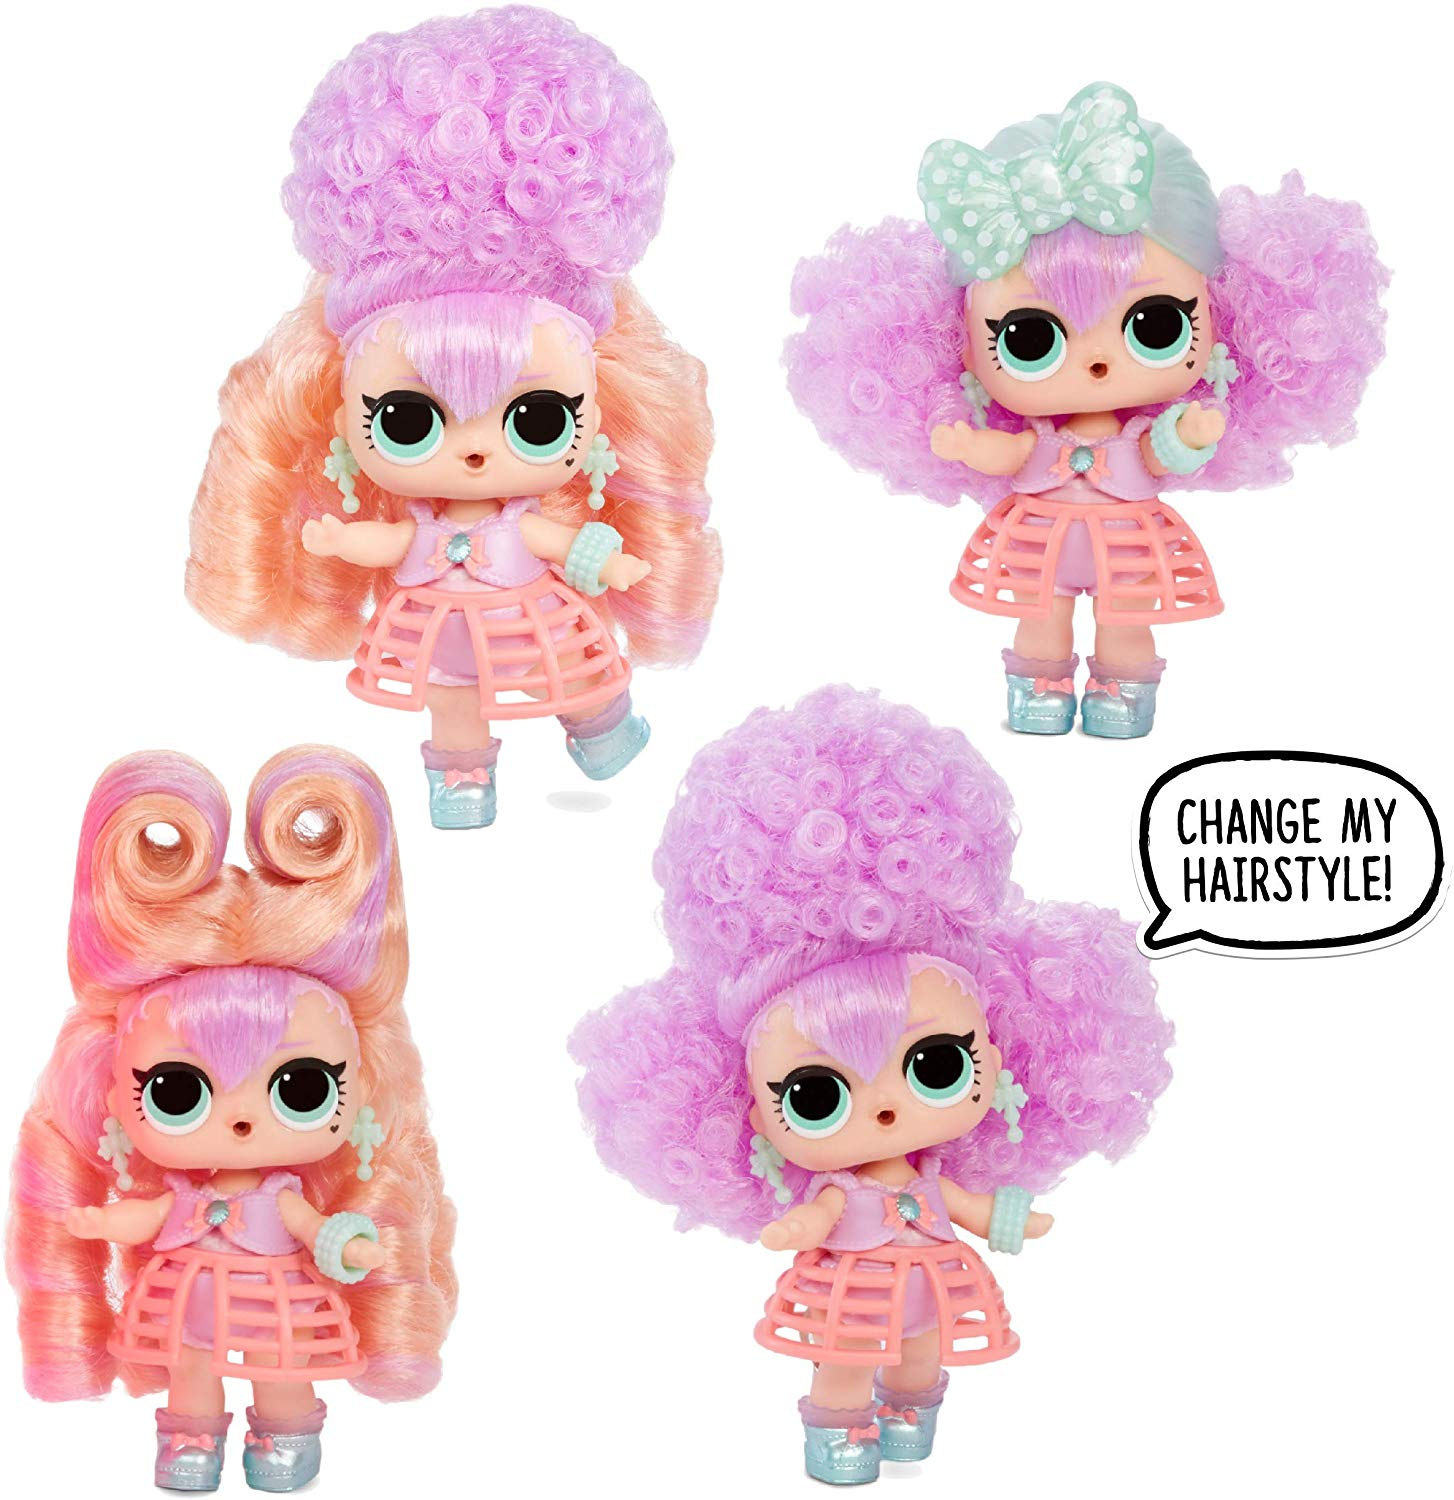 New L.O.L. Surprise! #Hairvibes Dolls with 15 Surprises ...